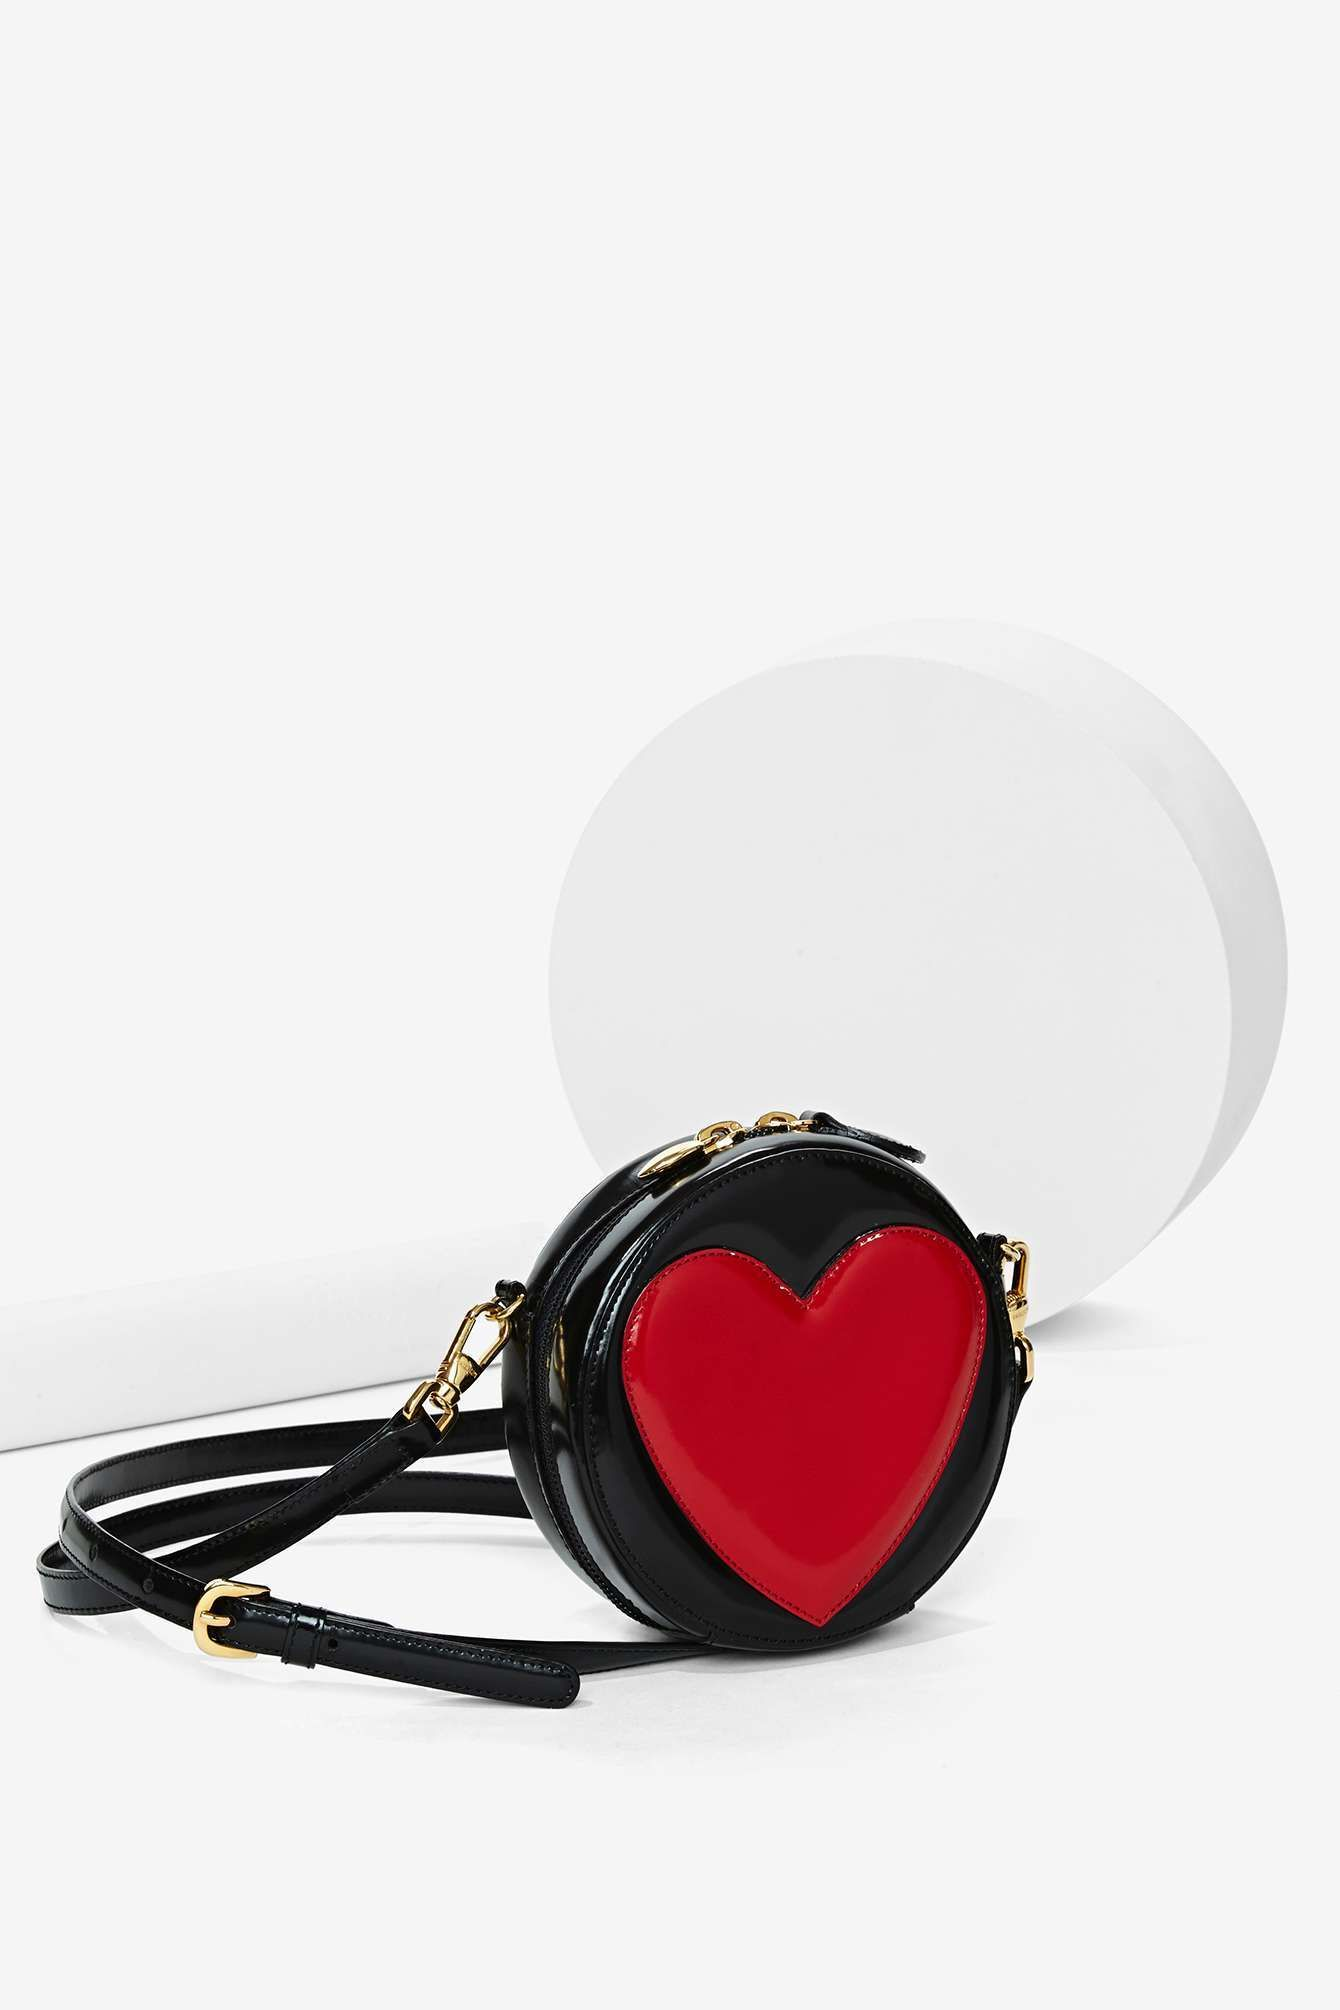 Accessories | Shop Women's Fashion Accessories